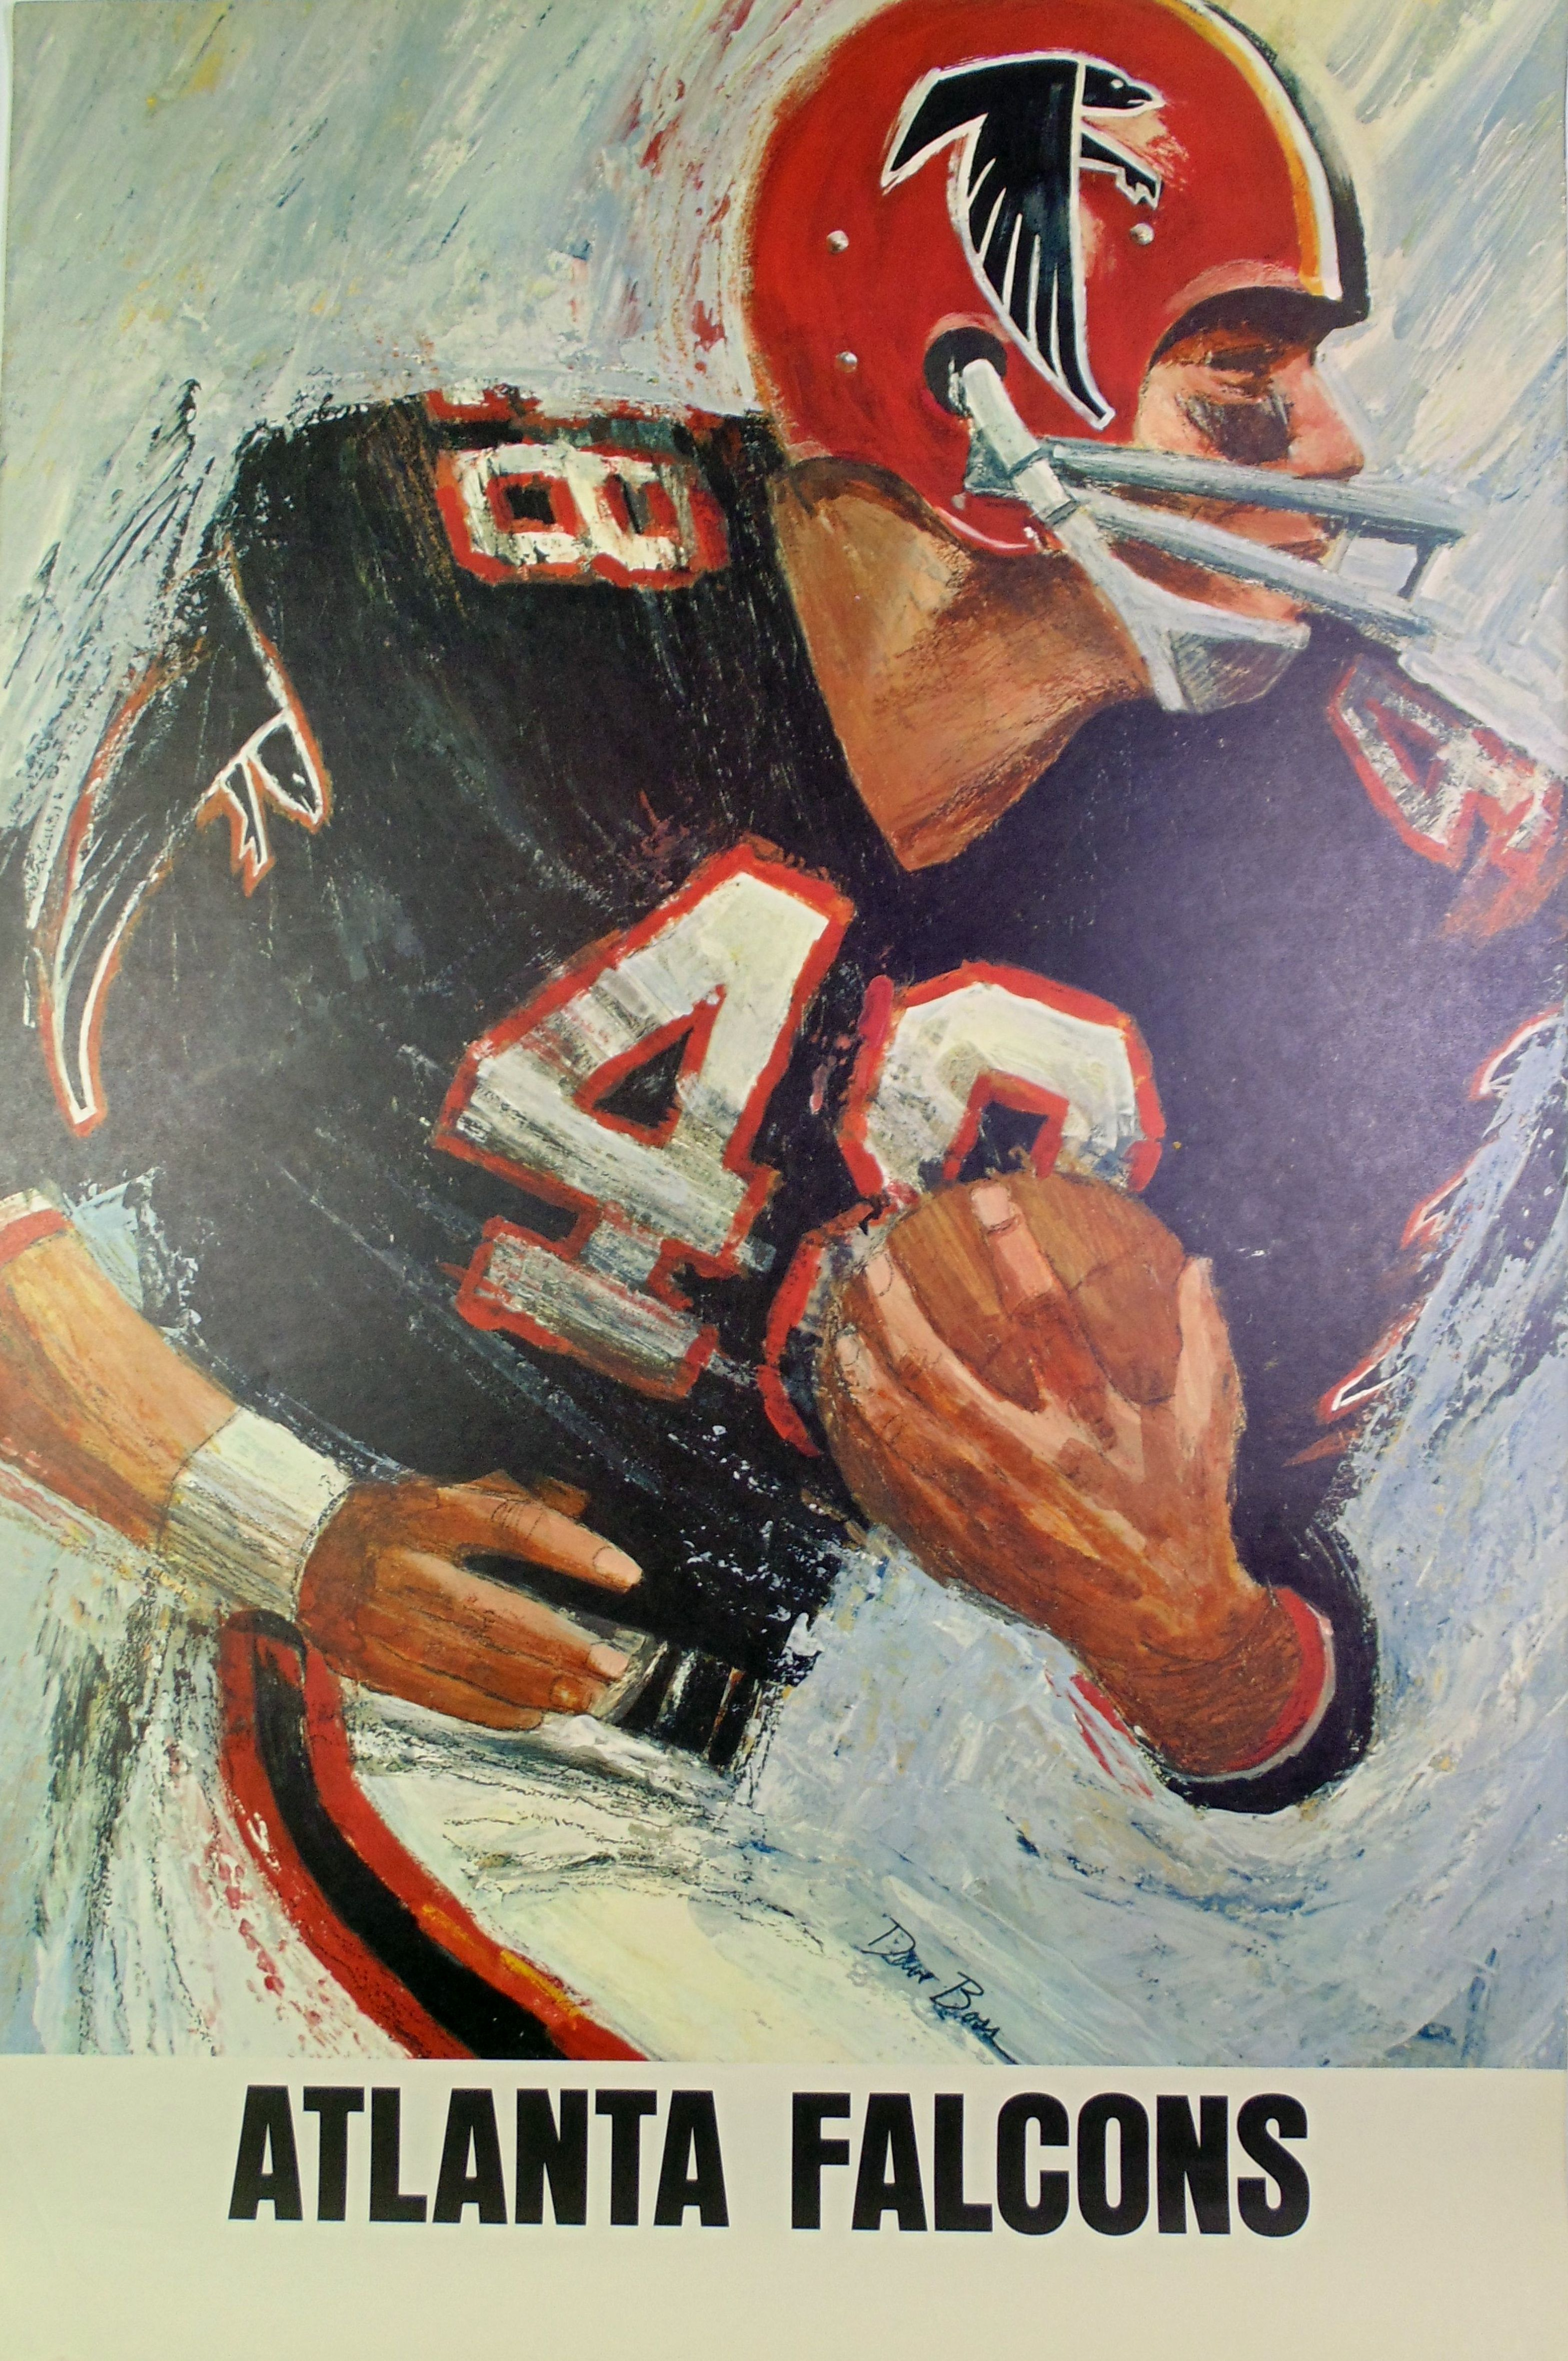 Vintage Falcons 1960s Nfl Poster Art By David Boss Atlanta Falcons Atlanta Falcons Art Football Art